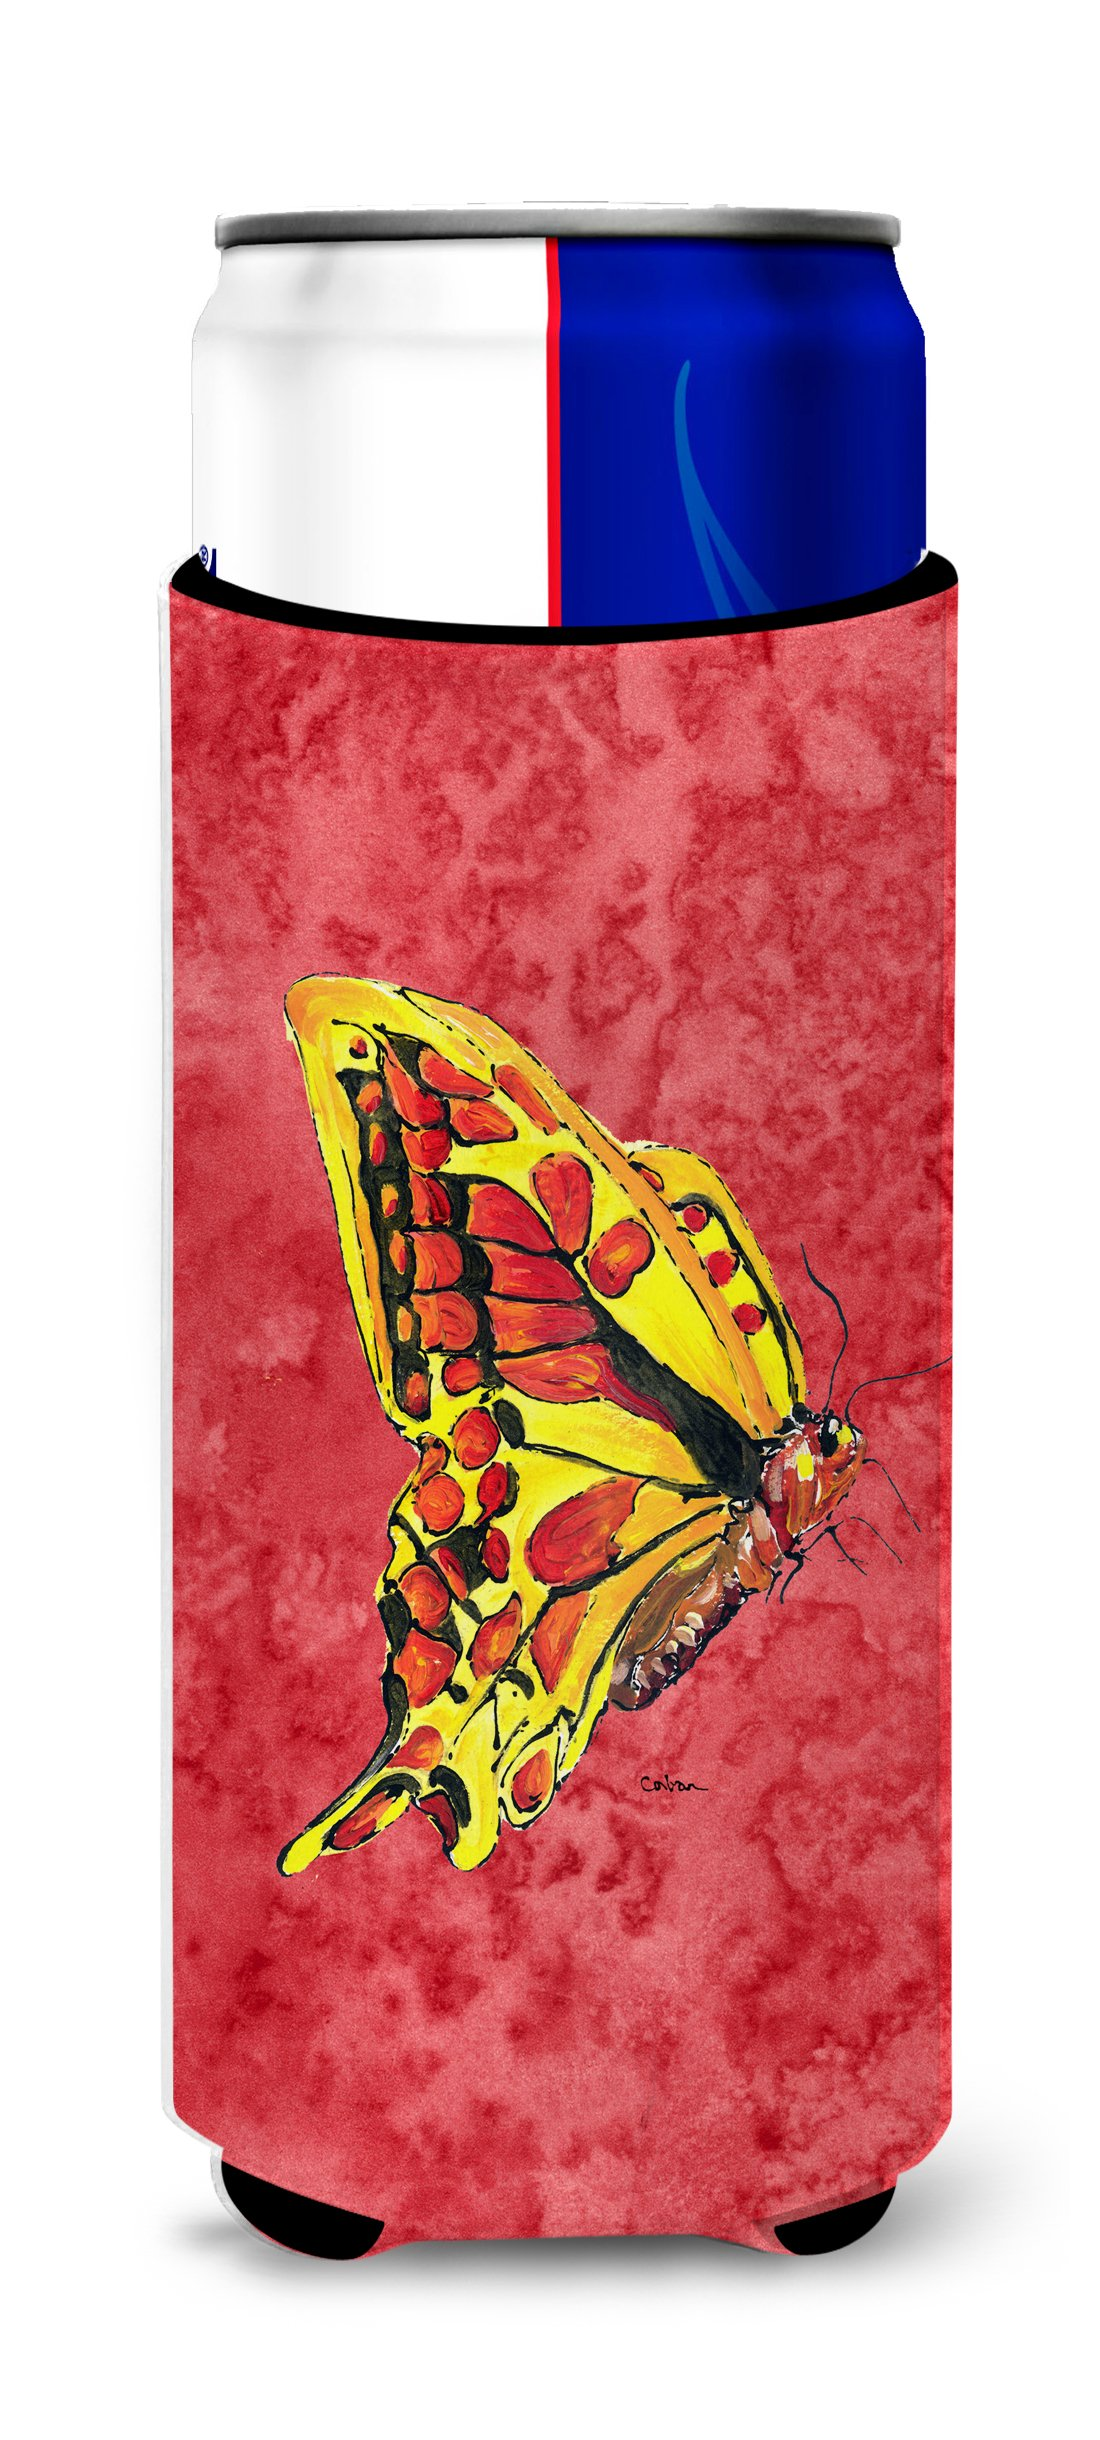 Caroline's Treasures 8862MUK Butterfly on Red Ultra Beverage Insulators for slim cans, Slim Can, multicolor